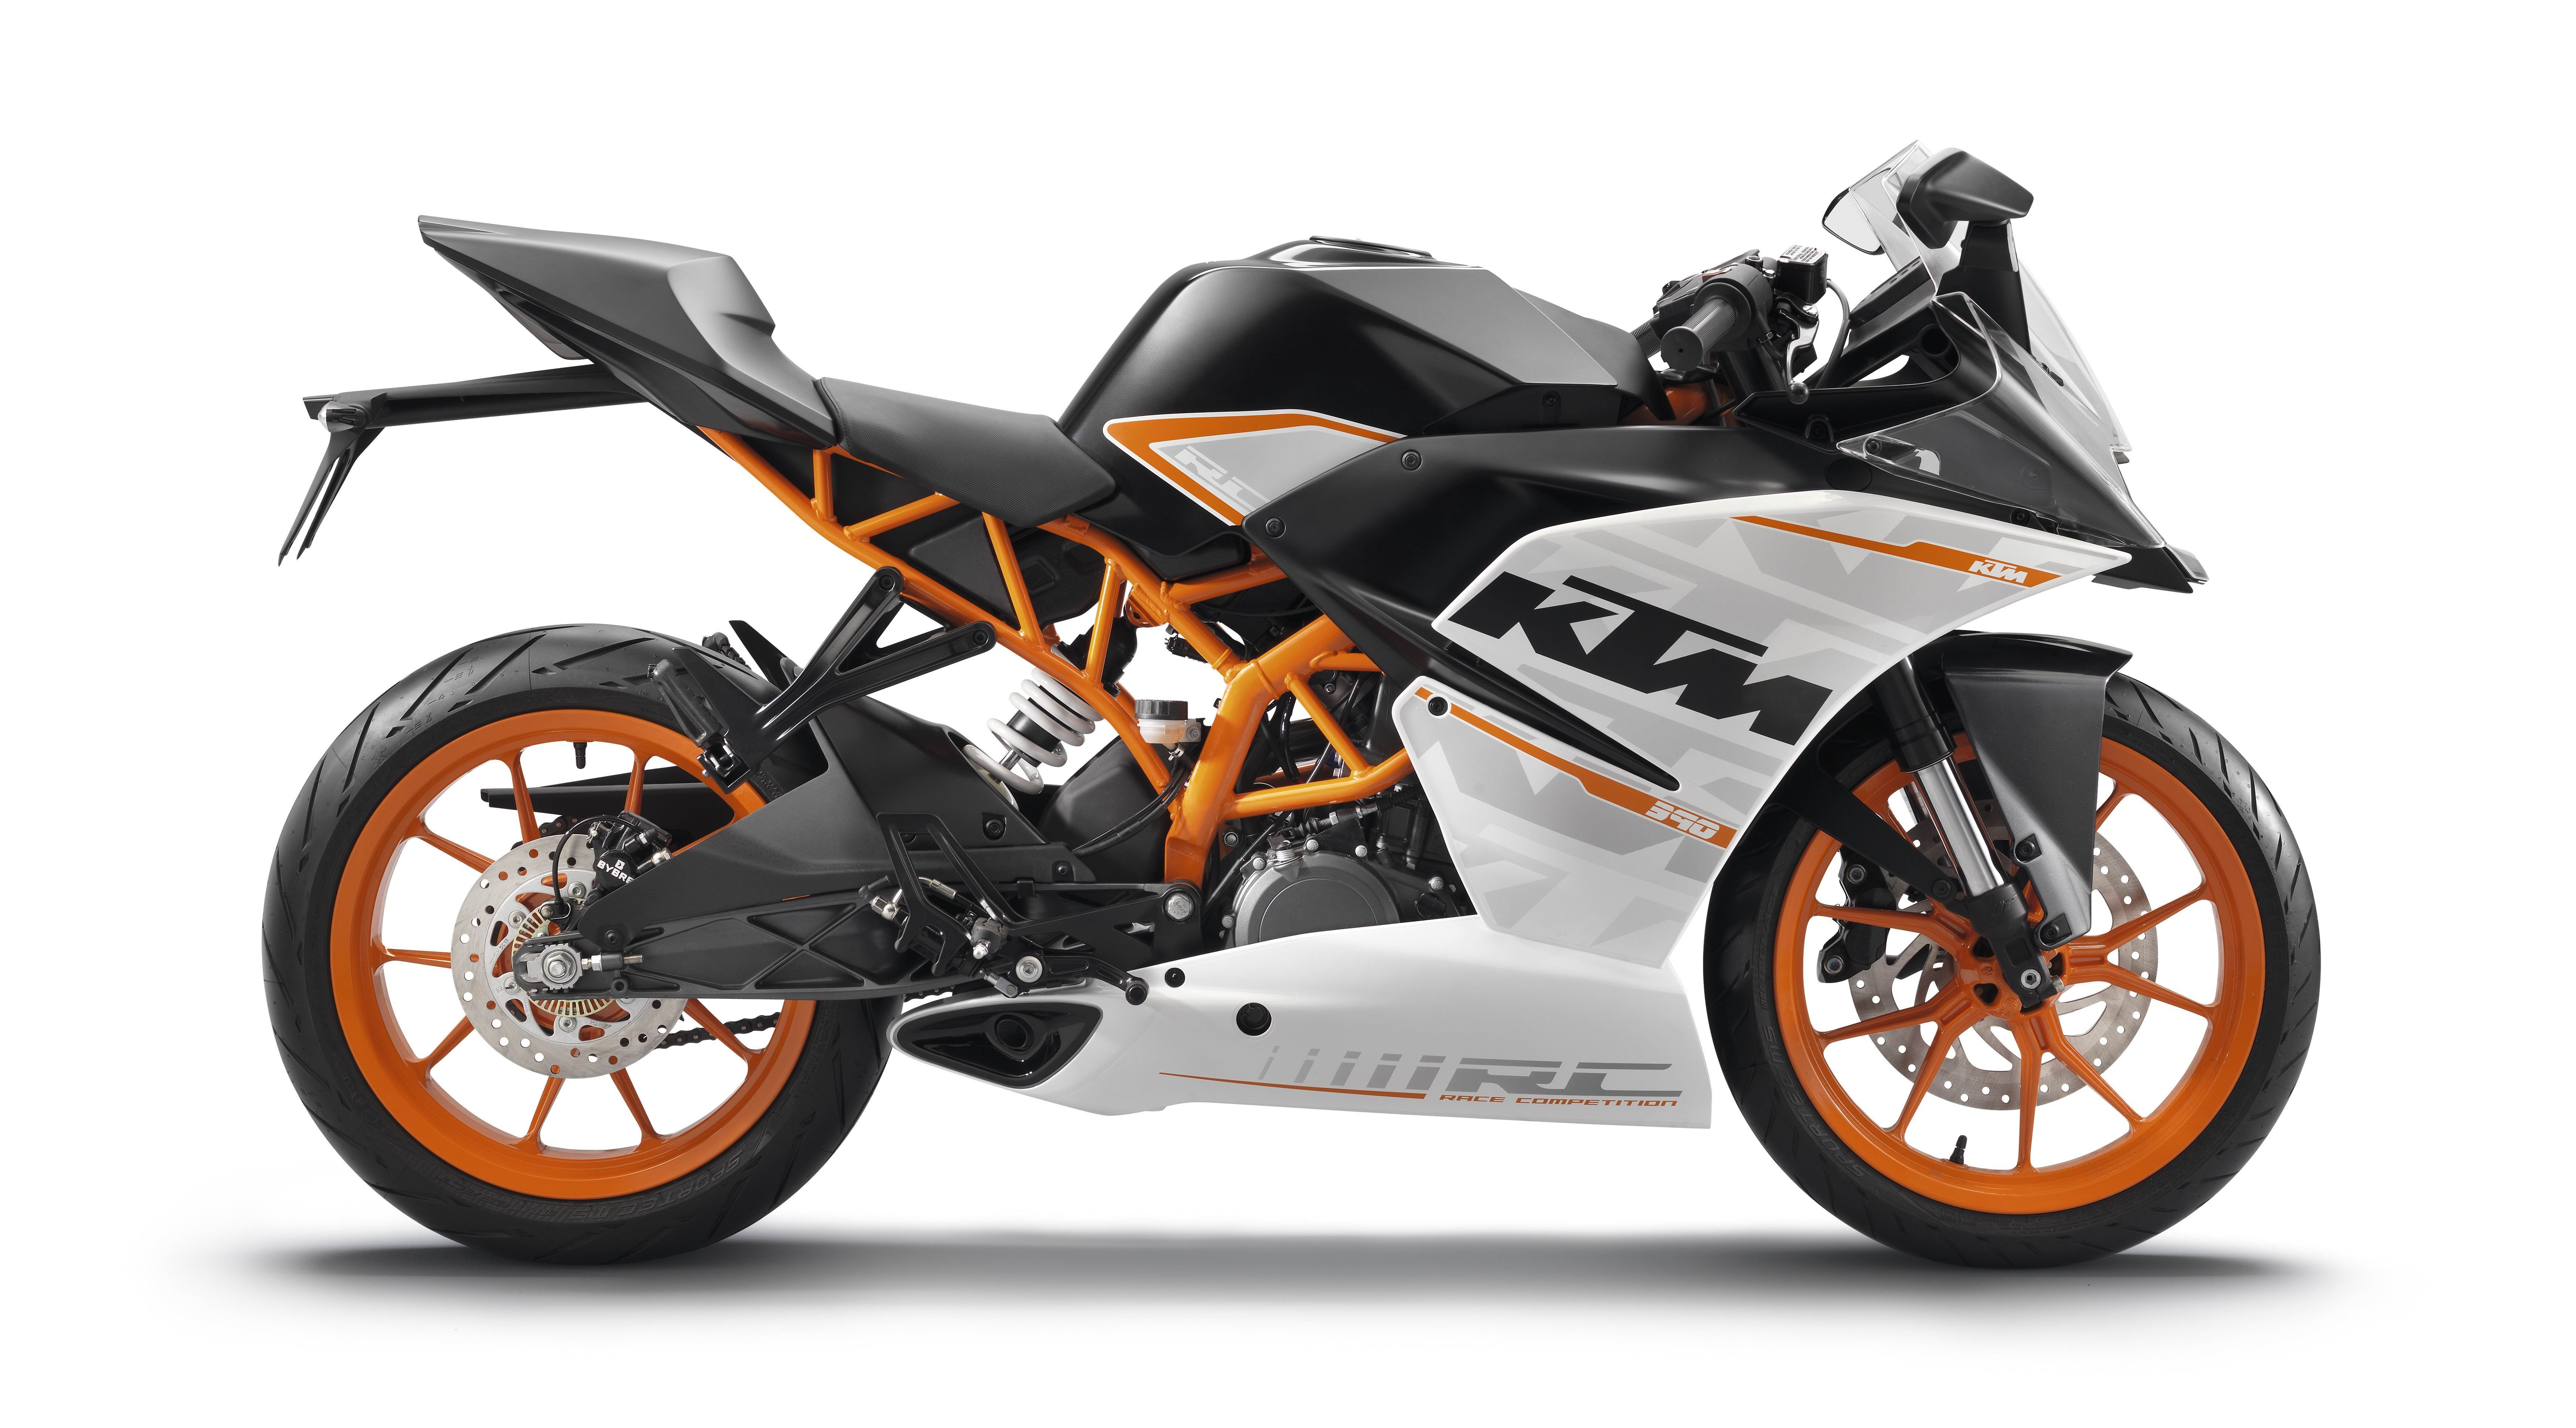 2020 Ktm Rc 390 First Ride From Ktm Targets 2 5 Lakh Bike Sales In